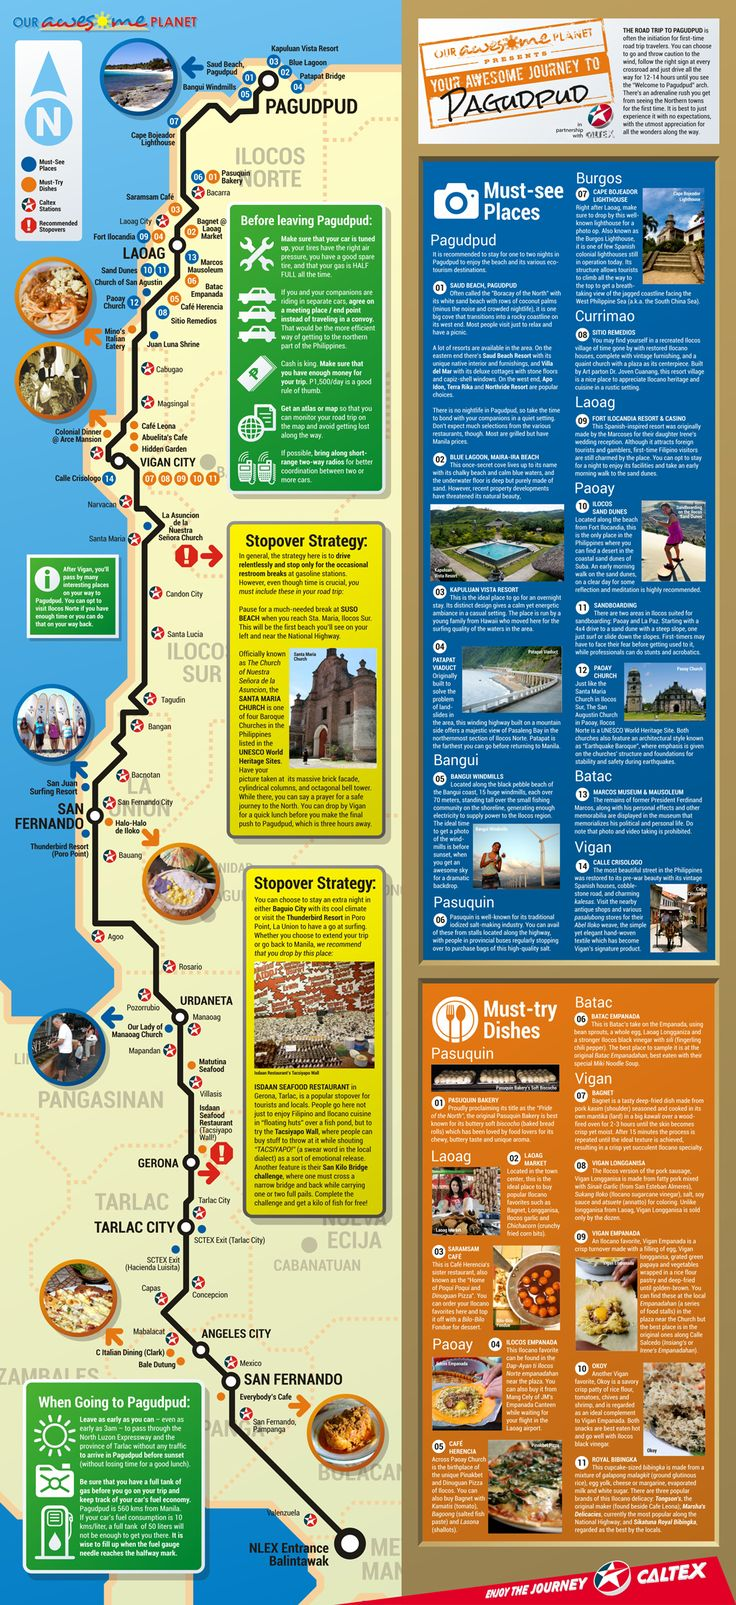 Our Awesome Planet in partnership with Caltex Philippines presents Awesome Journeys Infographics: (Download: Your Awesome Journey to Pagudpud PDF File for Printing) YOUR AWESOME JOURNEY TO PAGUDPUD written by Anton Diaz for the Awesome Life Planner 2012 The road trip...